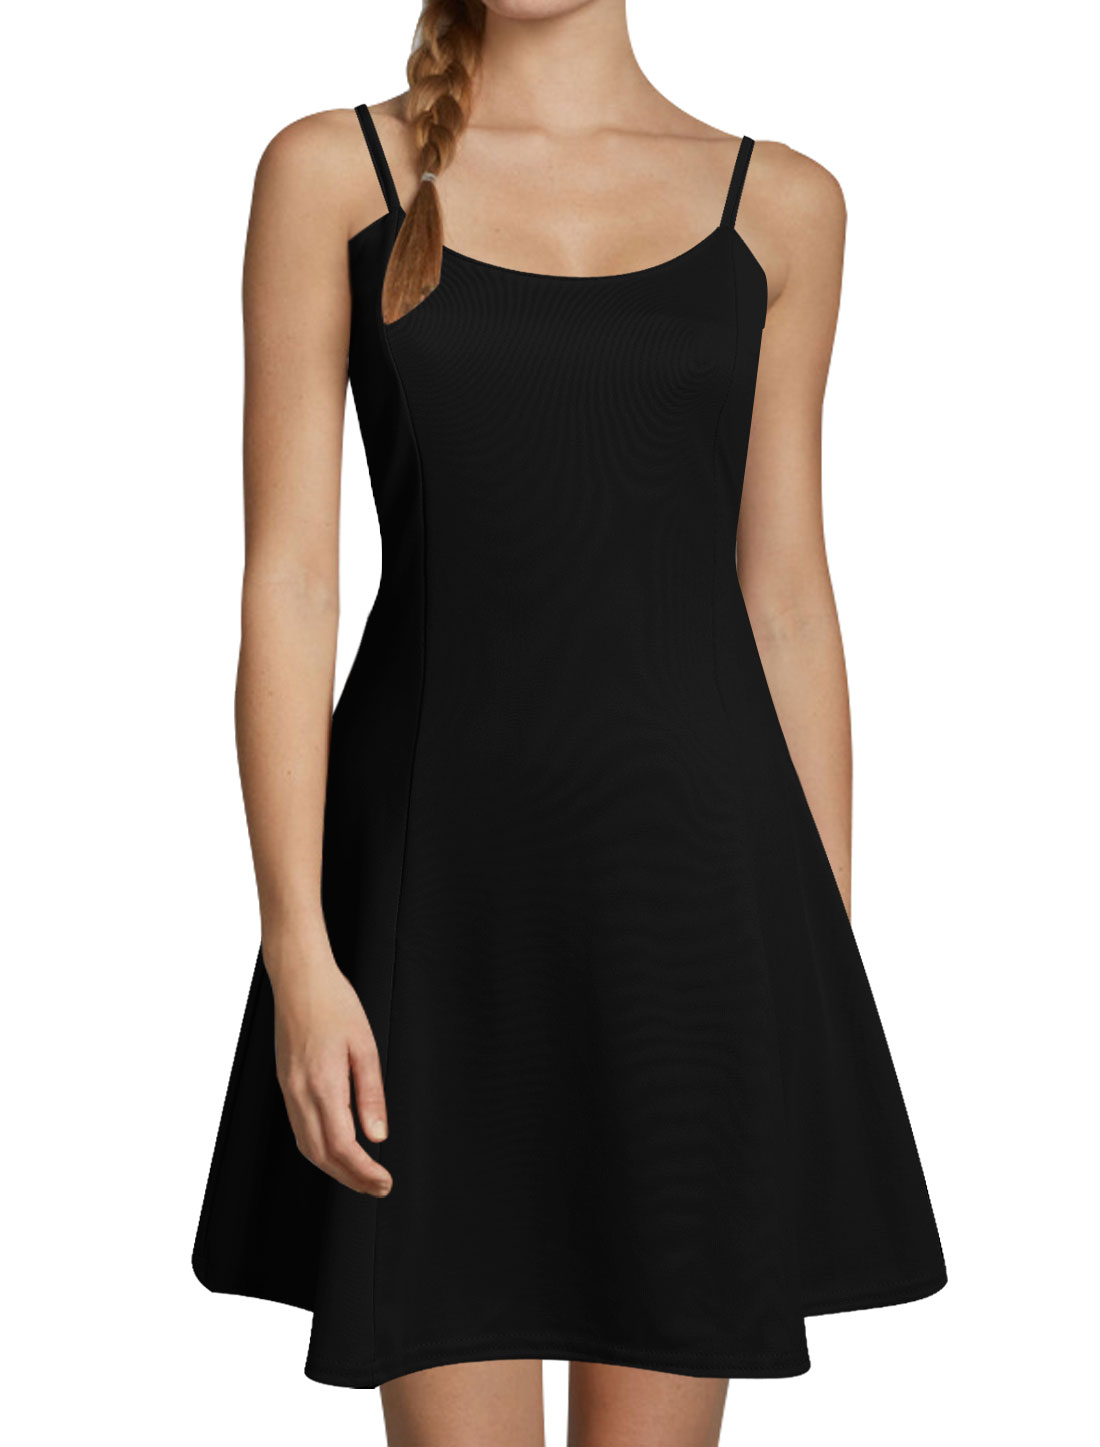 Women Scoop Neck Sleeveless Spaghetti Straps A Line Dress Black XS